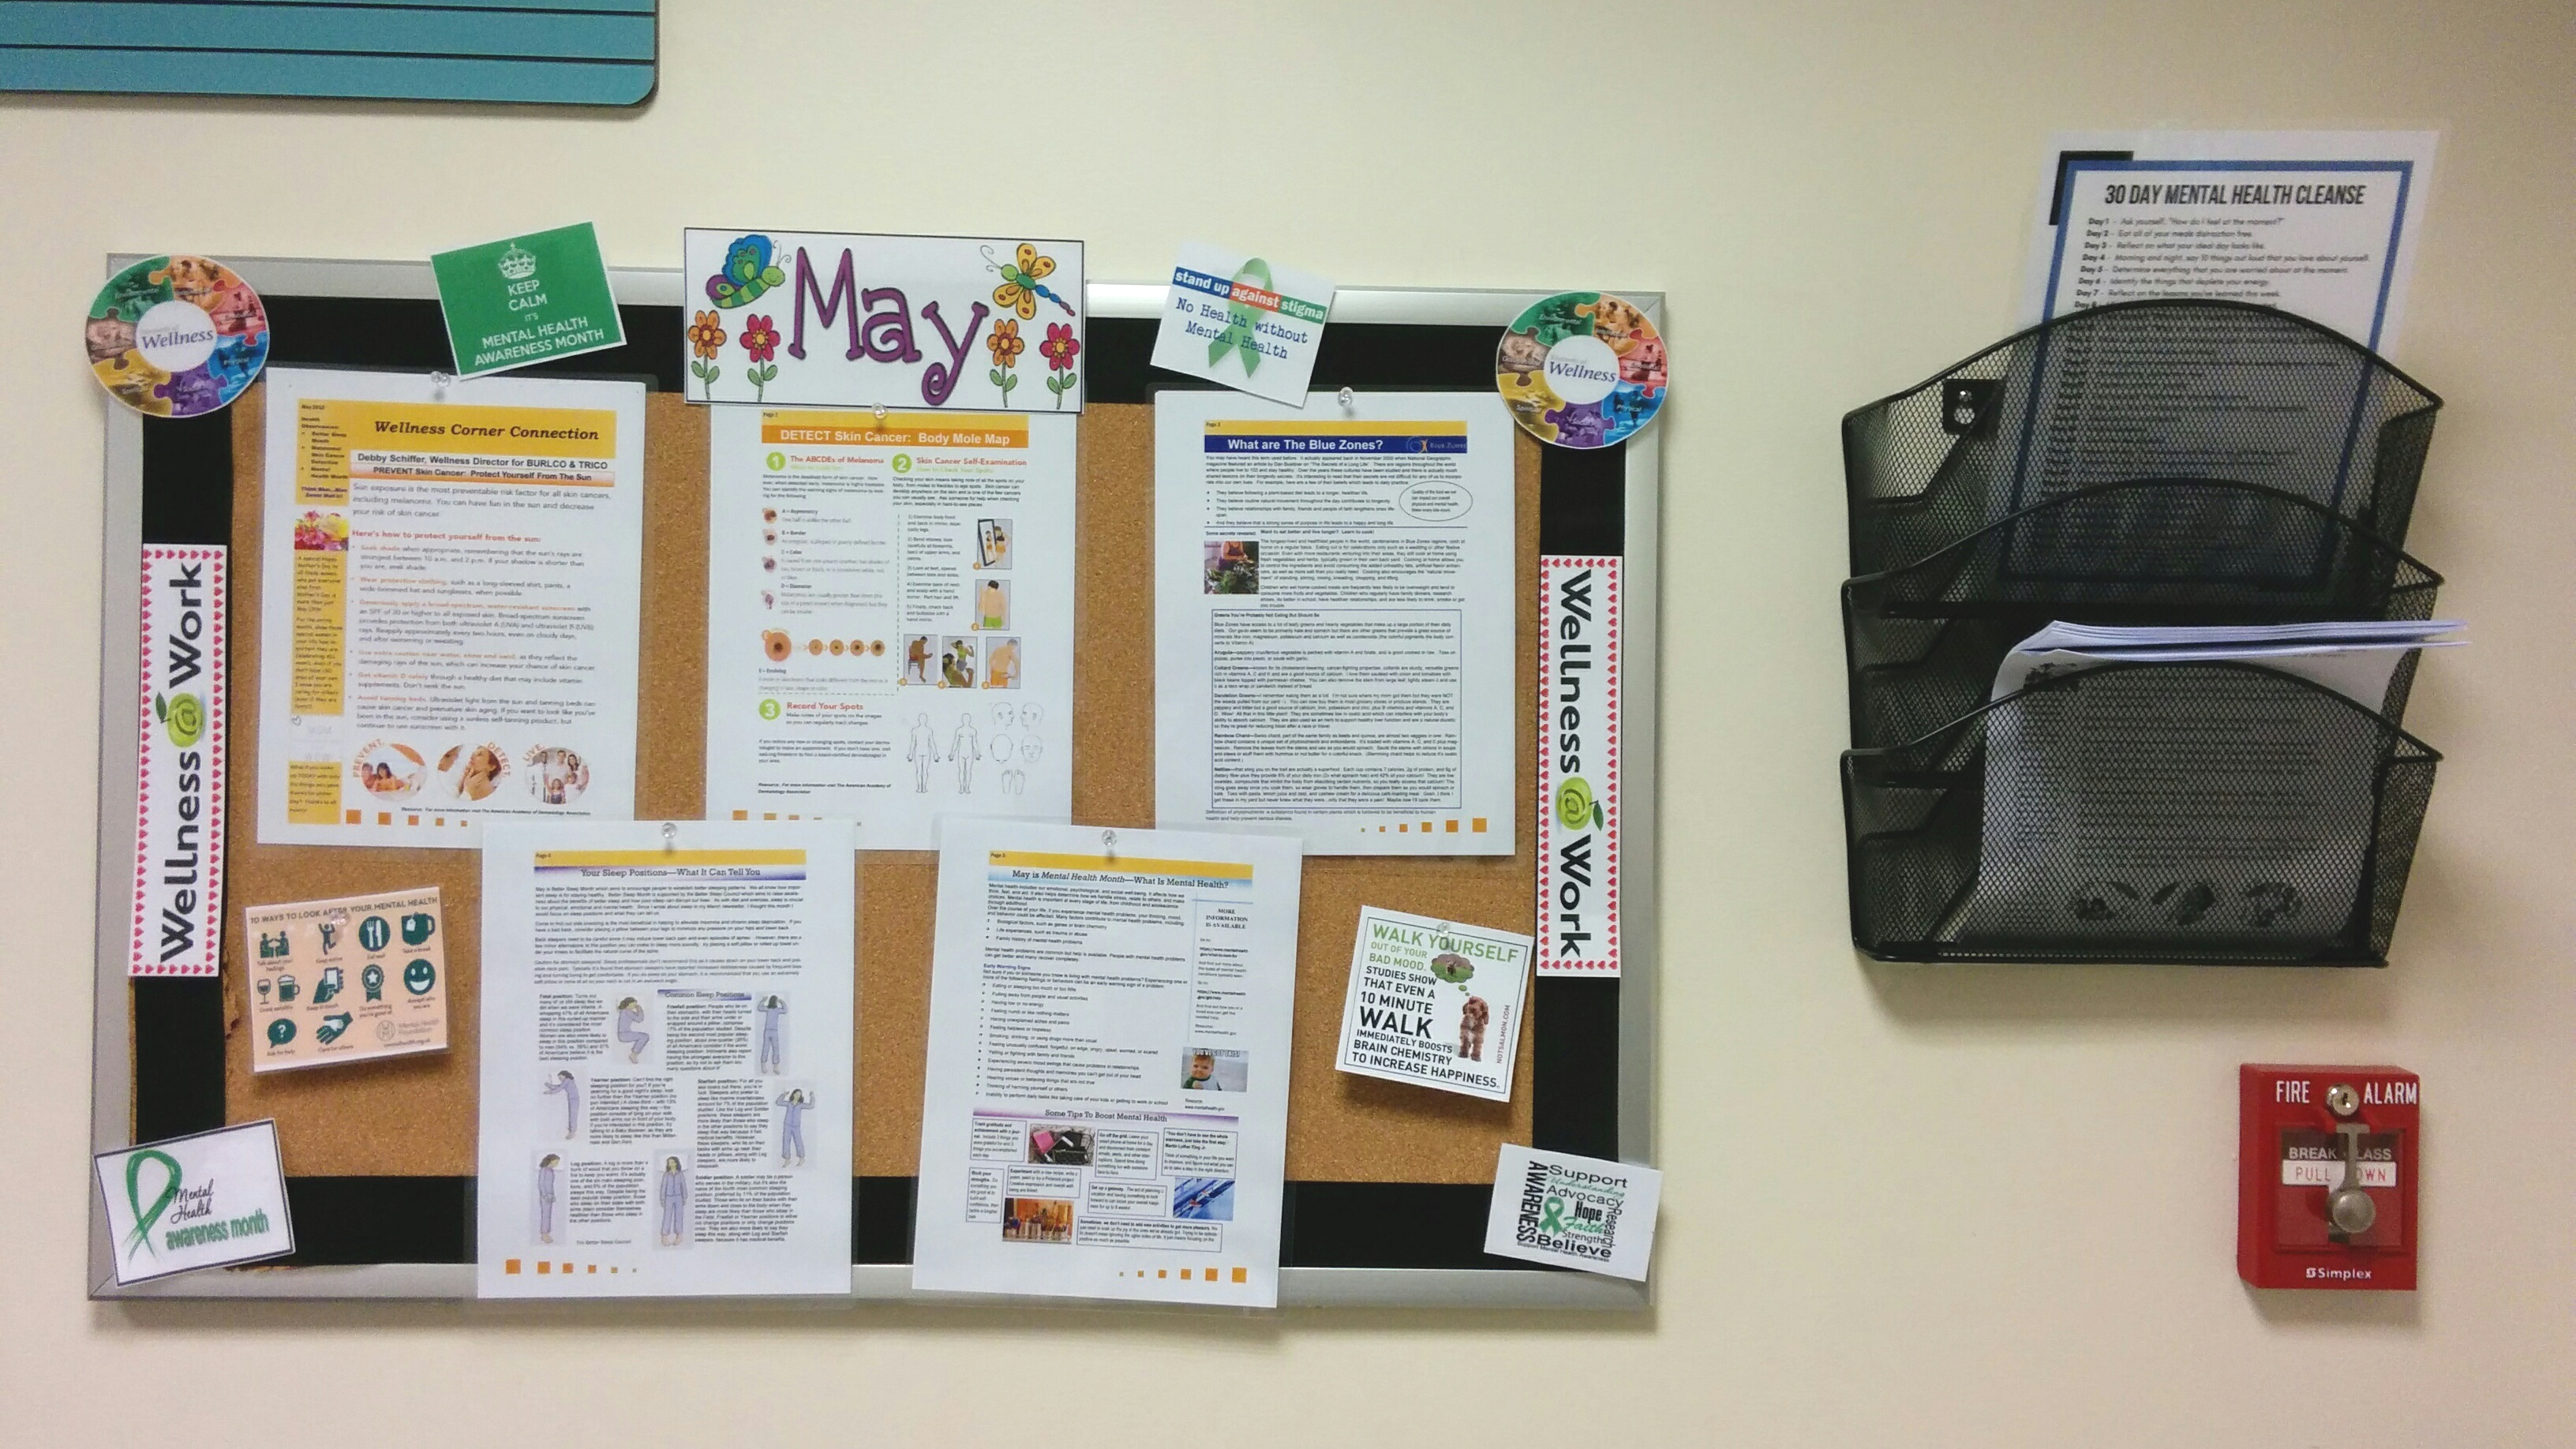 54a80d3194c Monroe Township continues to display their colorful and attractively  decorated health and wellness bulletin board